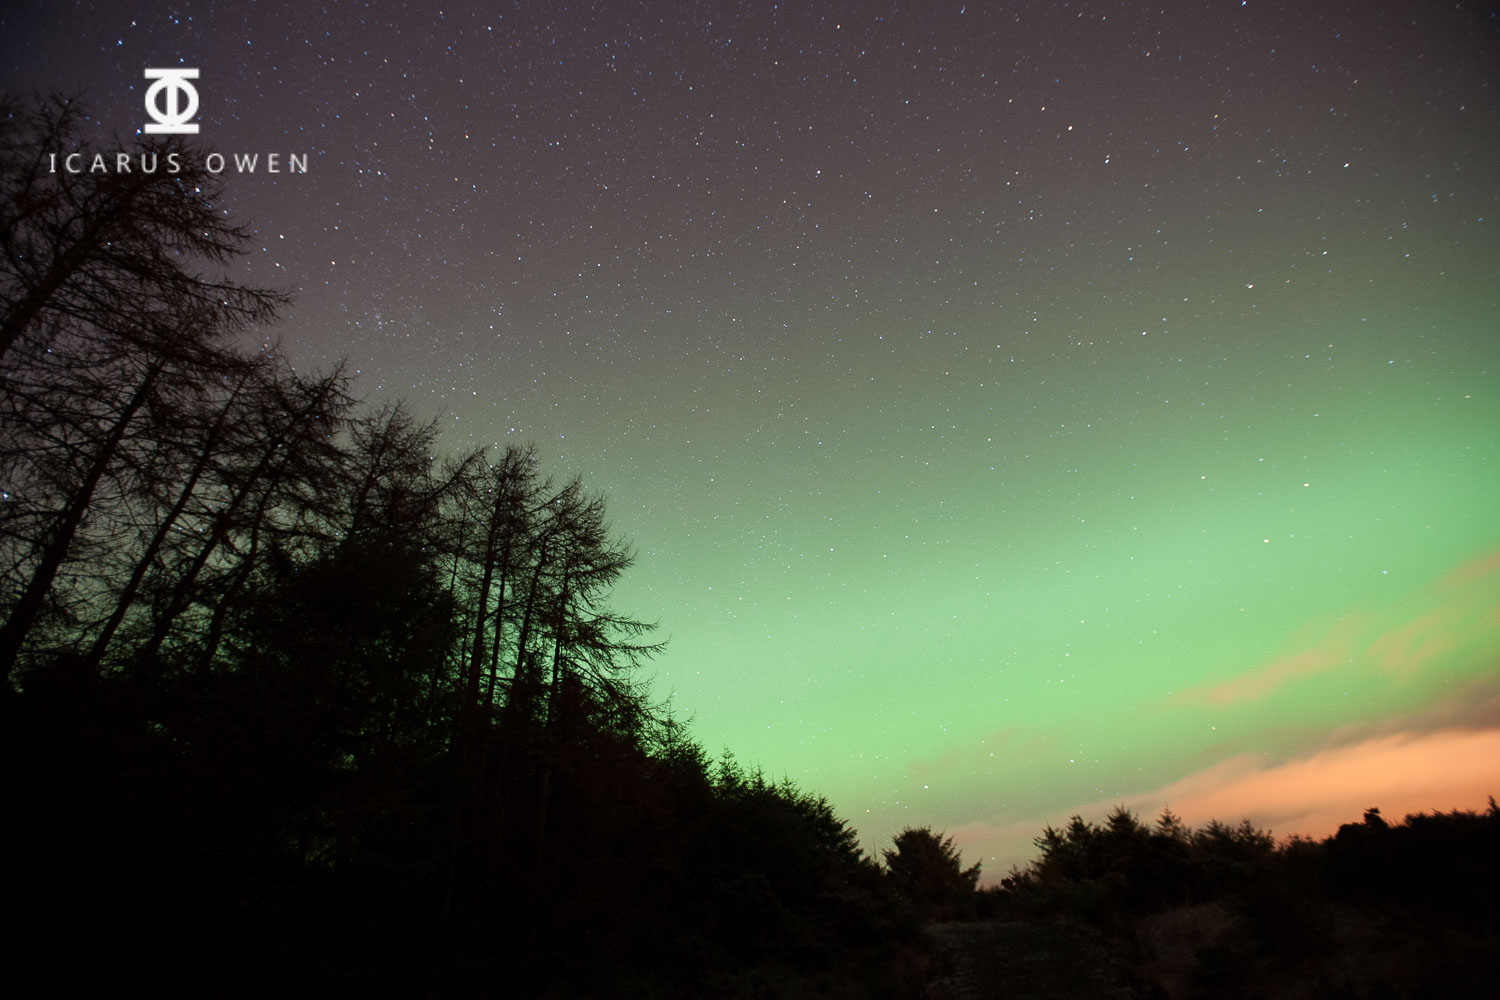 Image of aurora borealis - f2.8, 30 secs, ISO 1250 - note the lack of detail in the aurora due to the long shutter speed